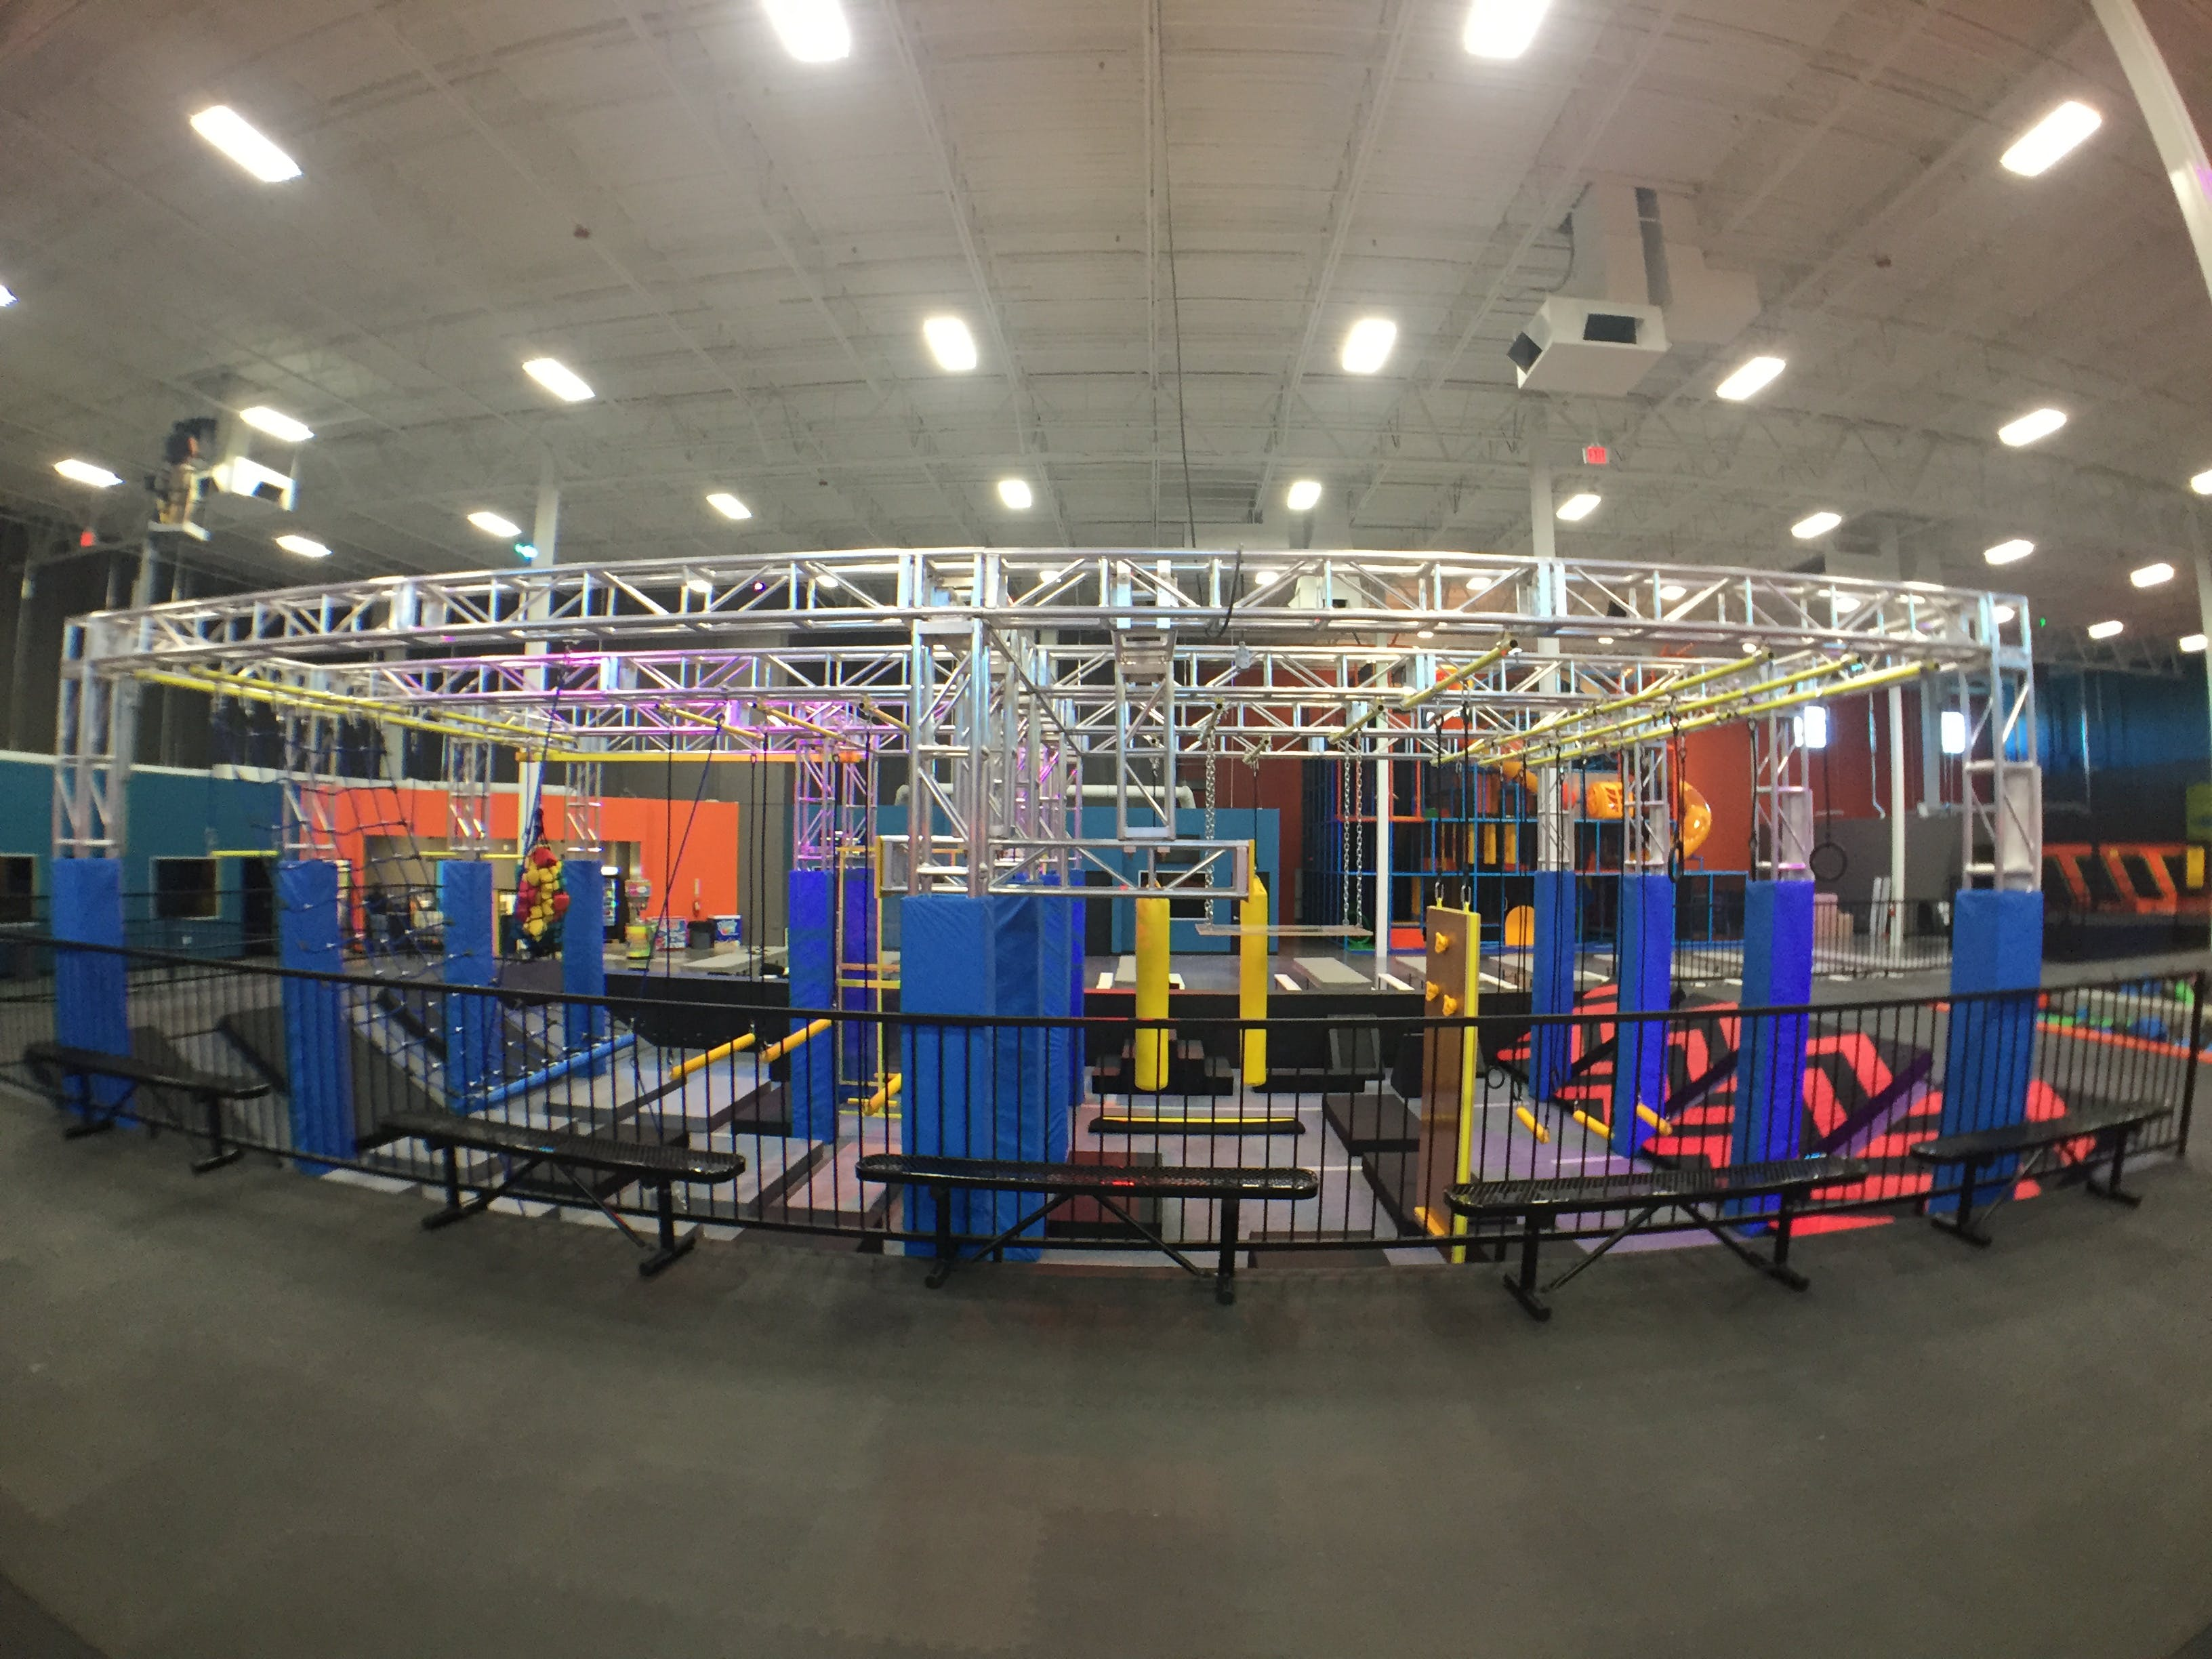 American Ninja Warrior Course At Trampoline Park Side View